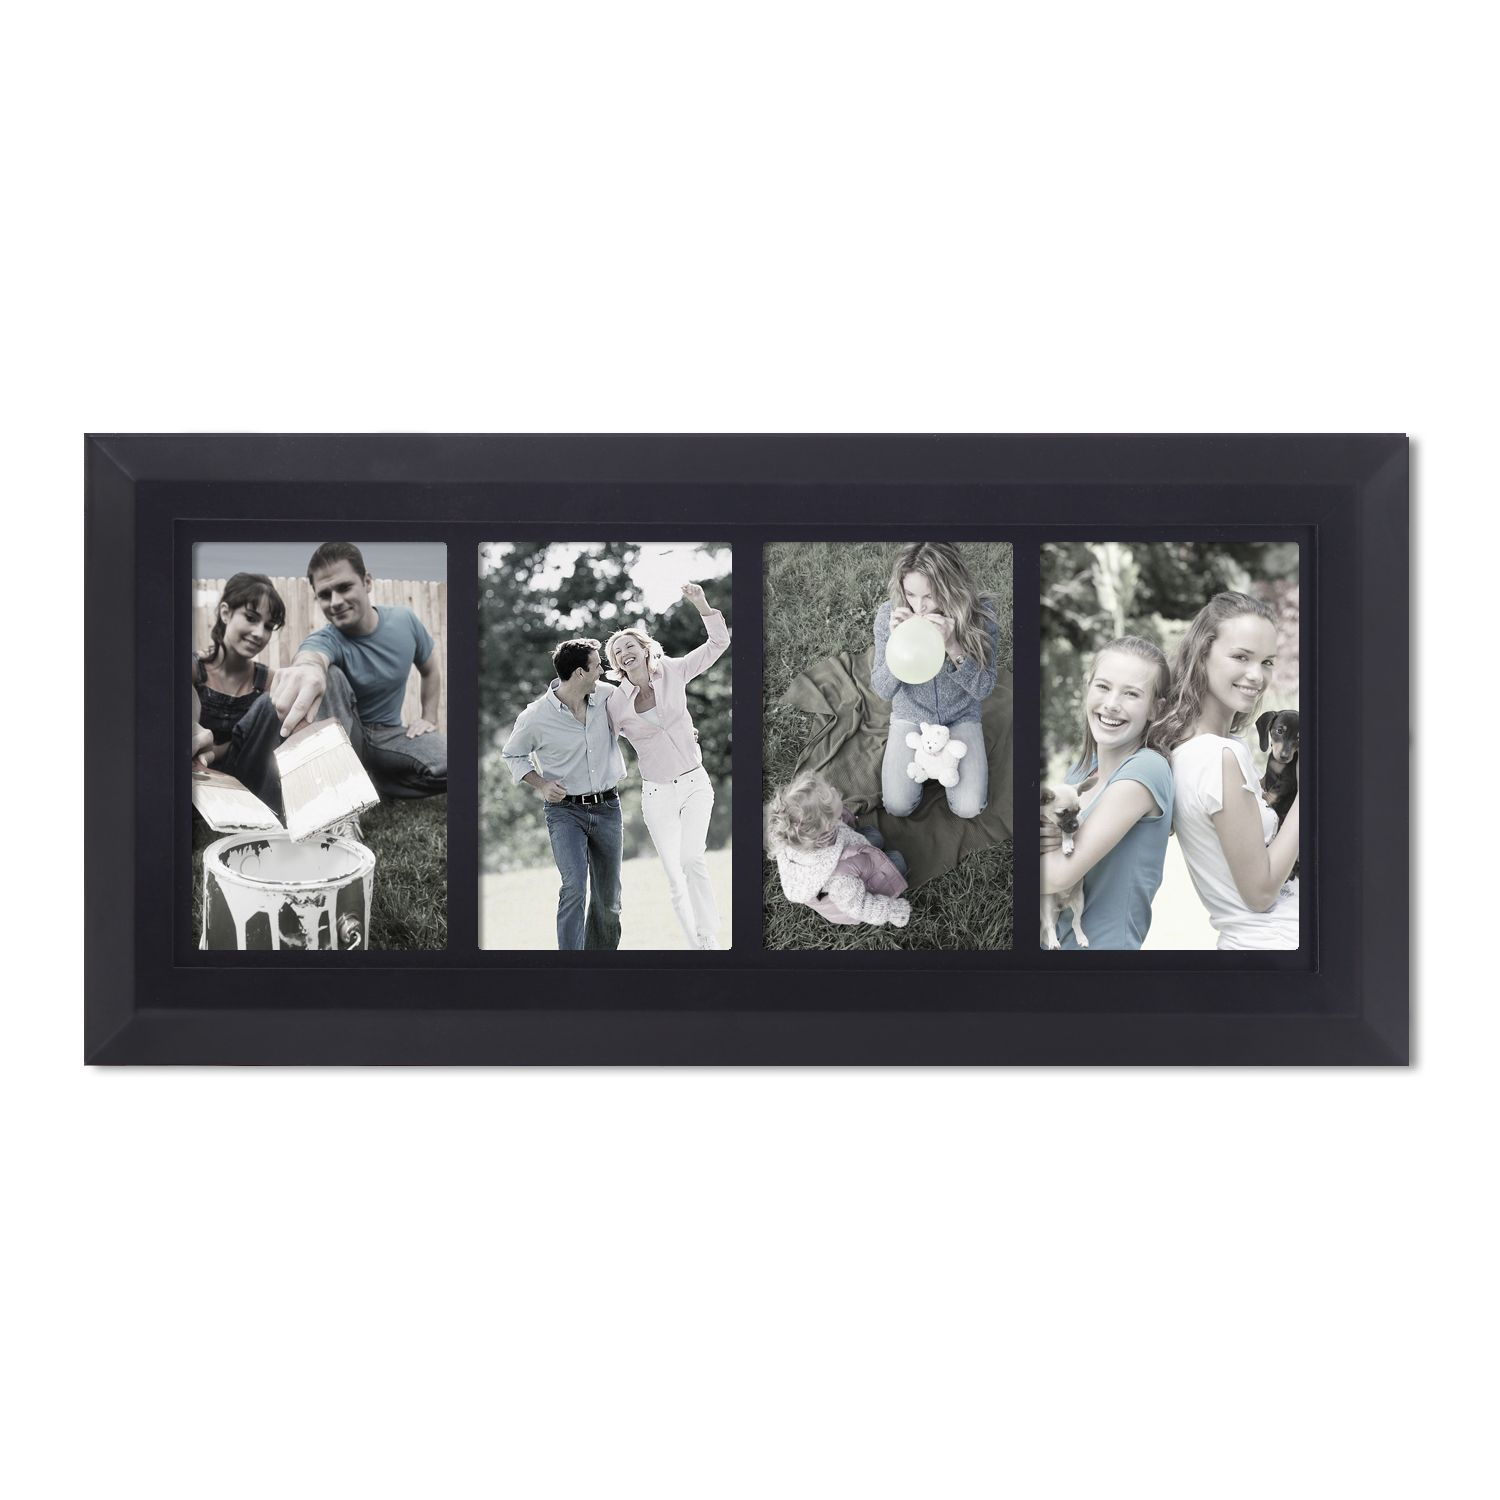 Adeco Decorative Black Wood Divided 4 Opening Pf0541 Collage